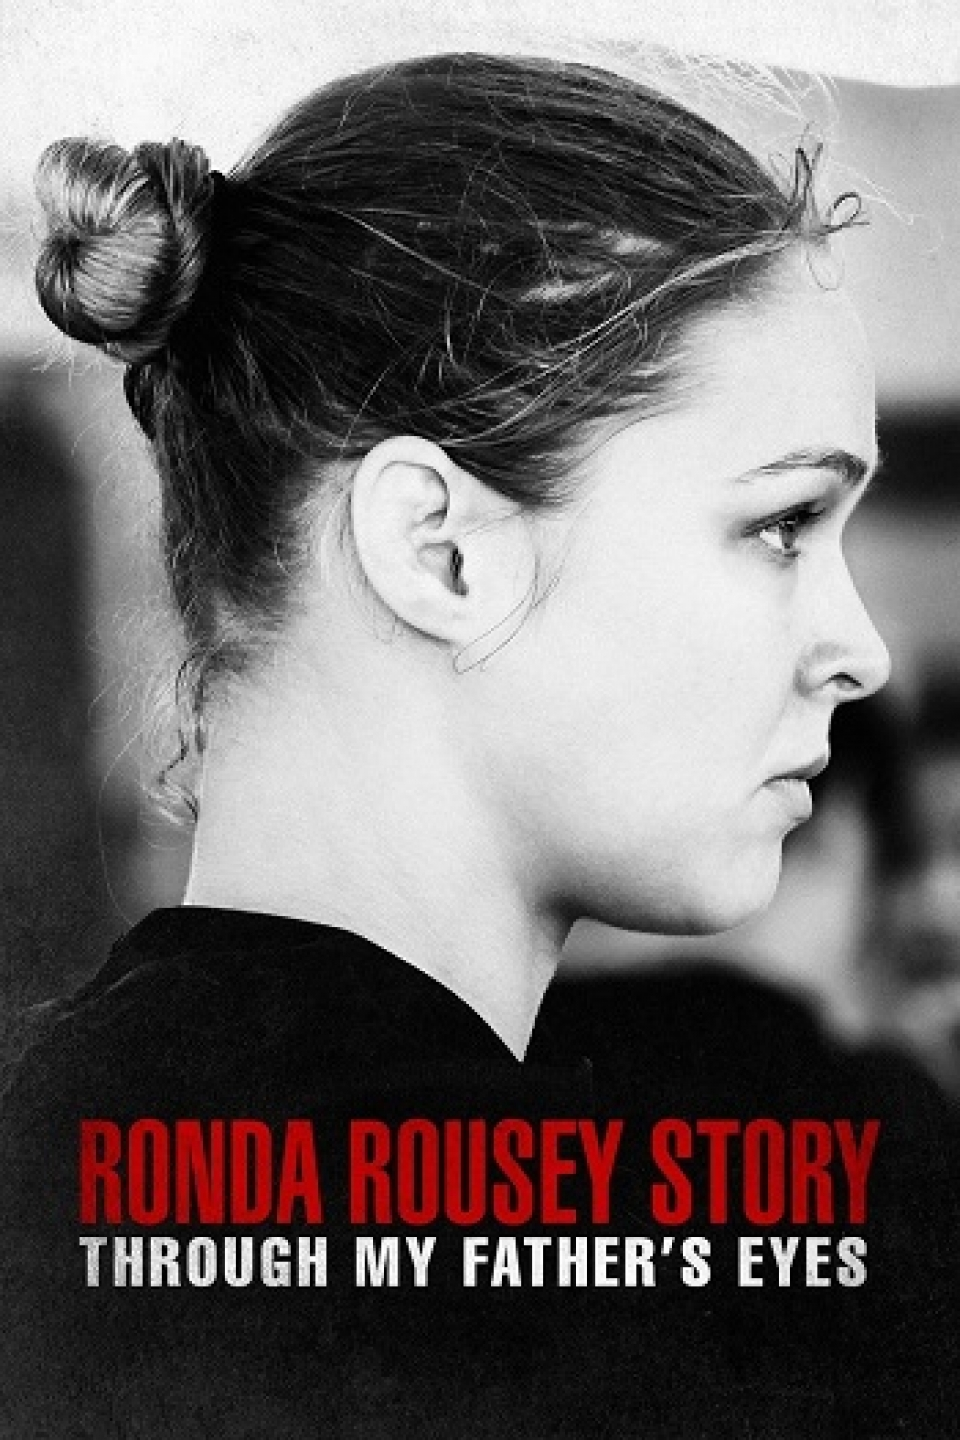 THE RONDA ROUSEY STORY THROUGH MY FATHER S EYES (2019)